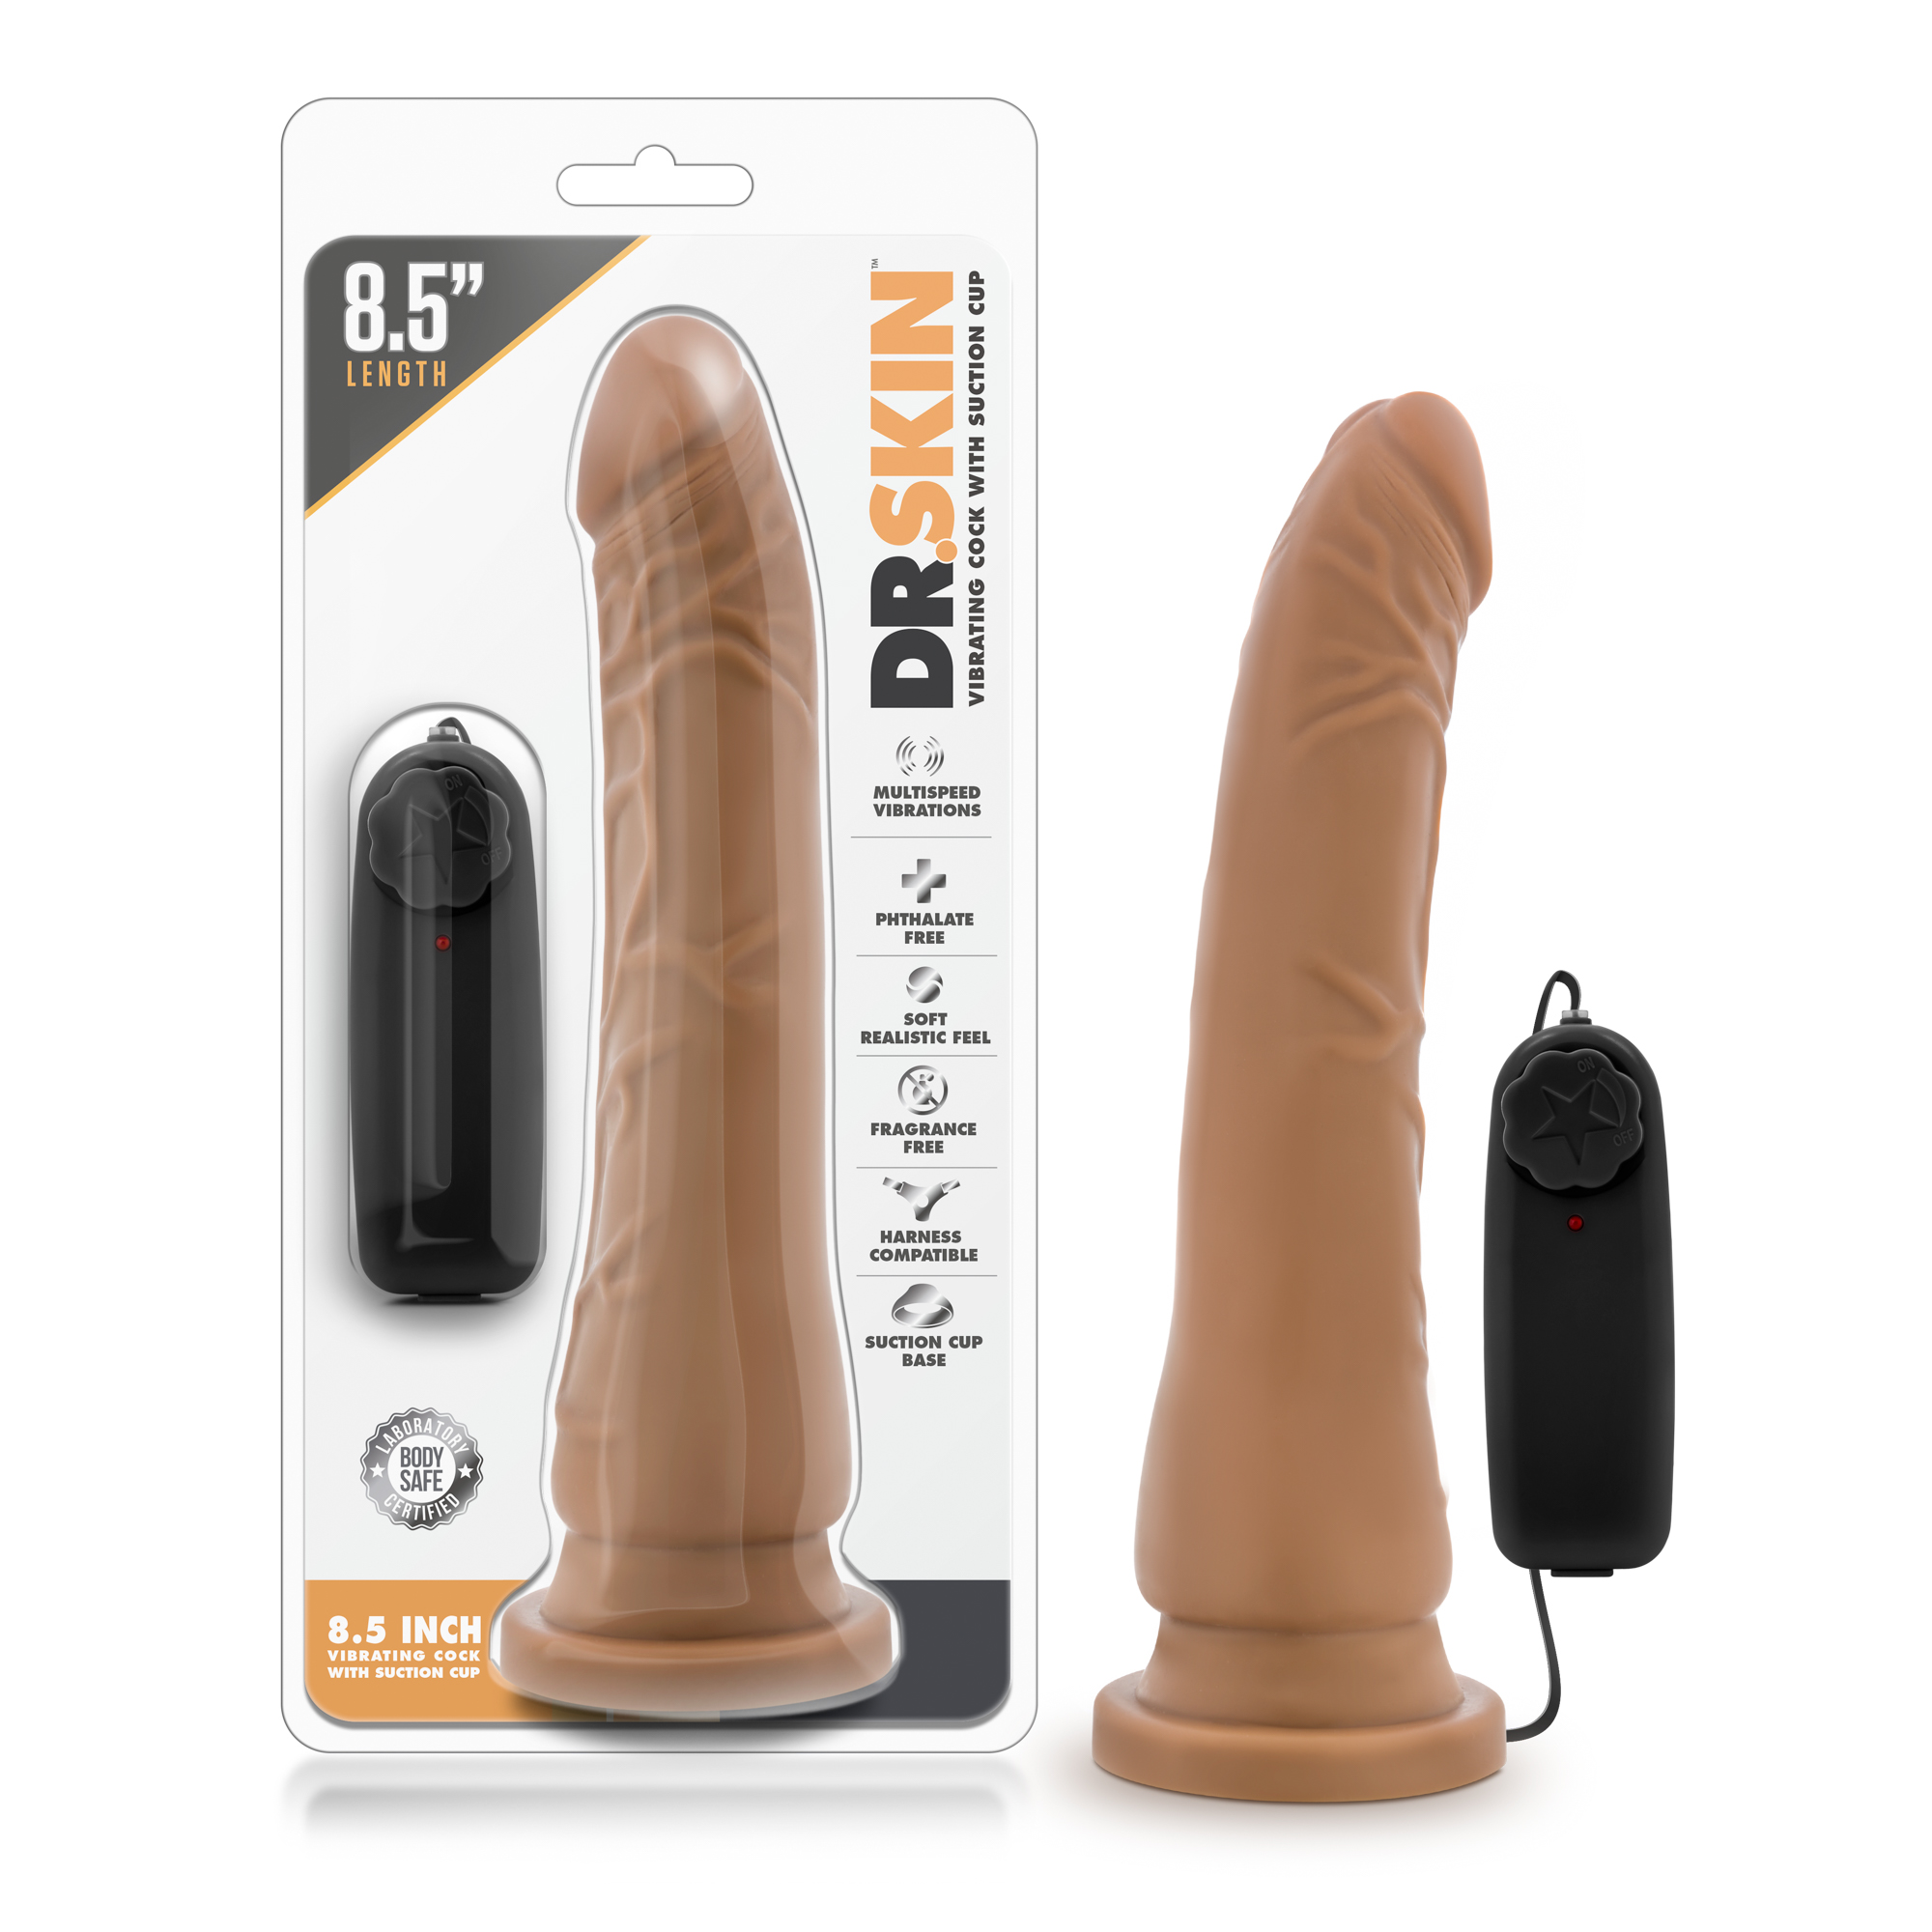 Dr. Skin - 8.5 Inch Vibrating Realistic Cock With Suction Cup - Mocha